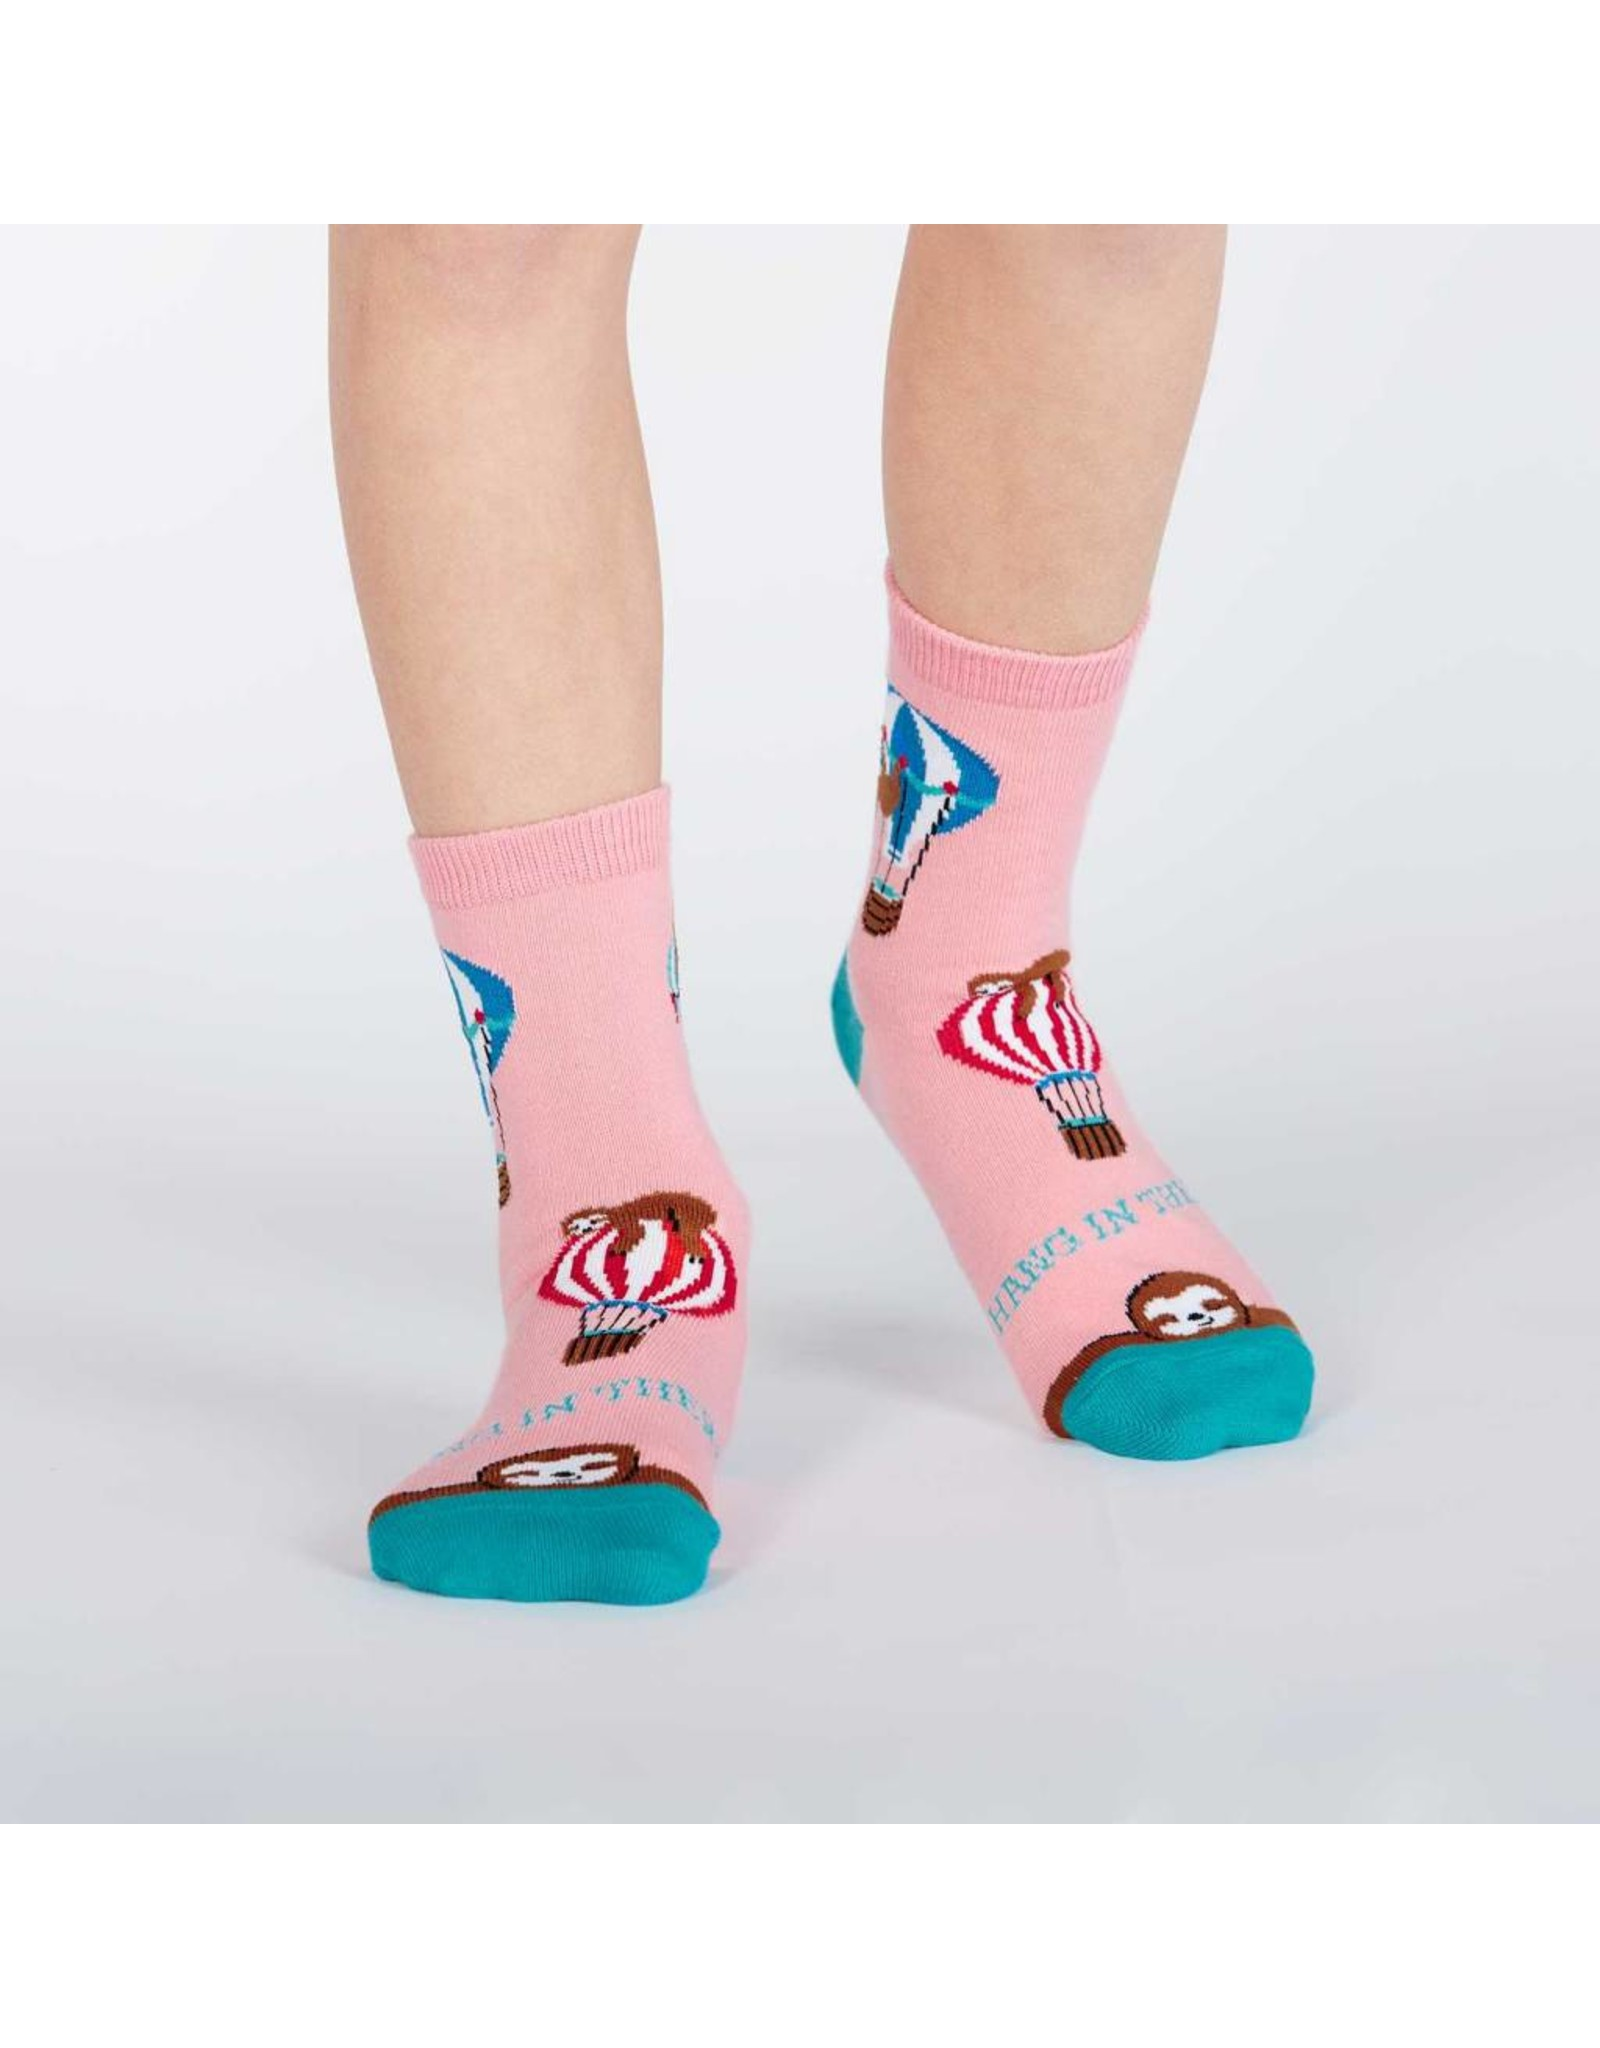 SOCK IT TO ME - Youth Hang in There Crew Socks